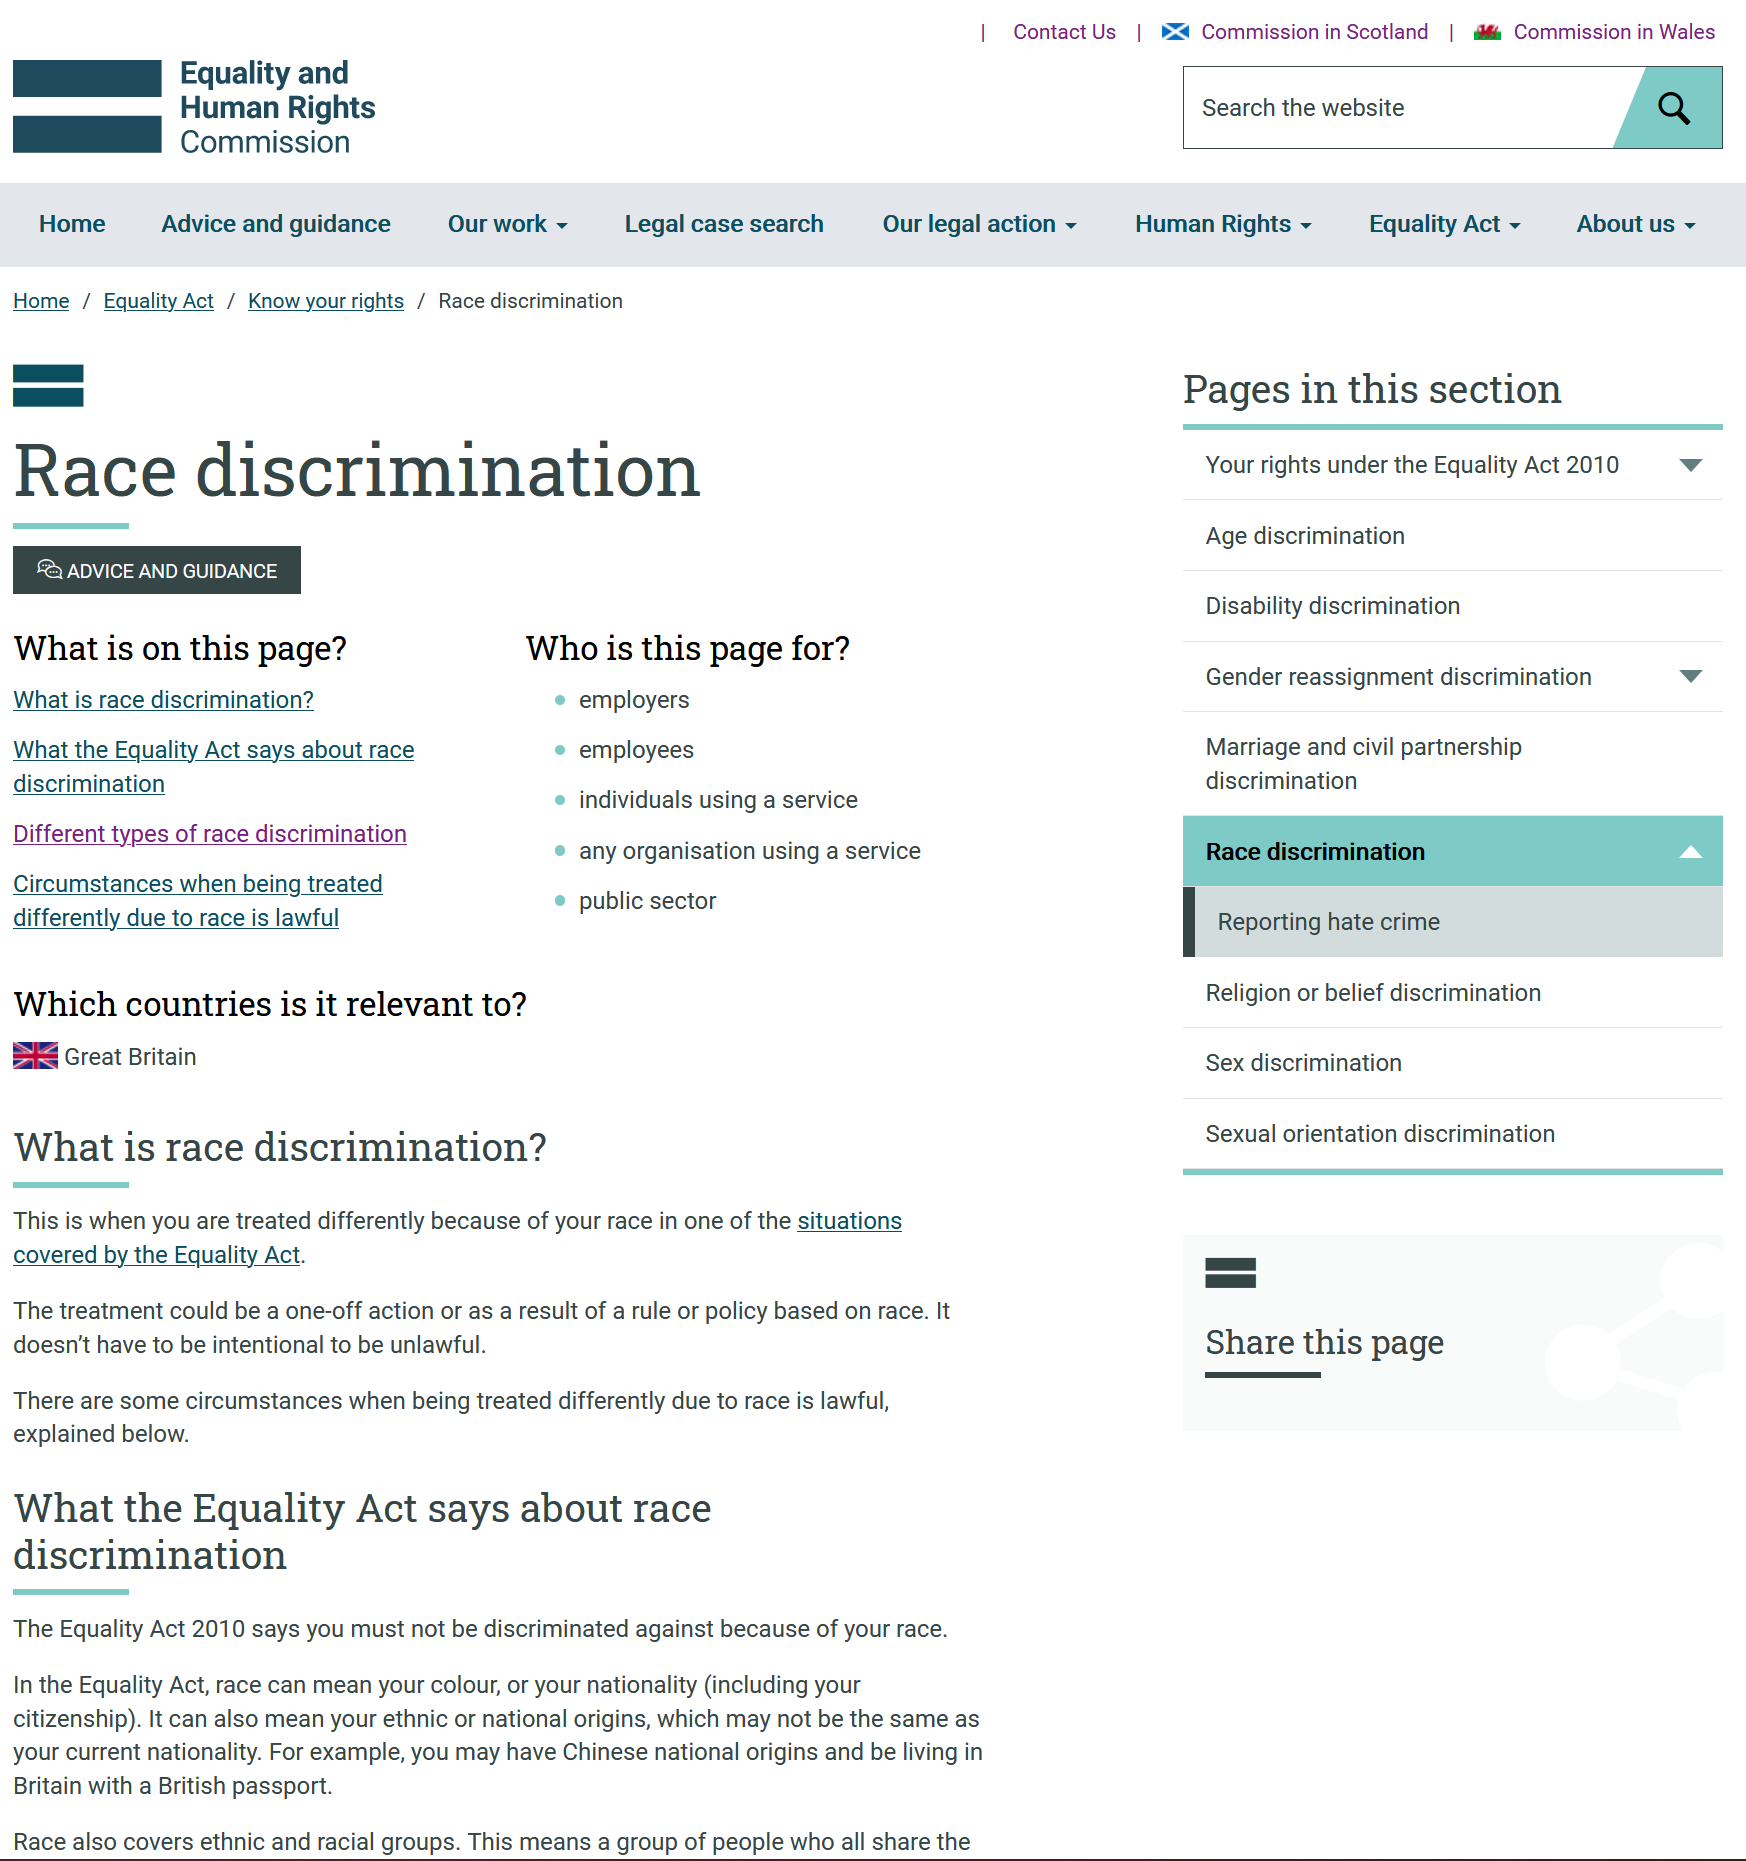 equality and human rights commission - race discrimination Equality and Human Rights Commission – Race discrimination Equality and Human Rights Commission Race discrimination capa 1